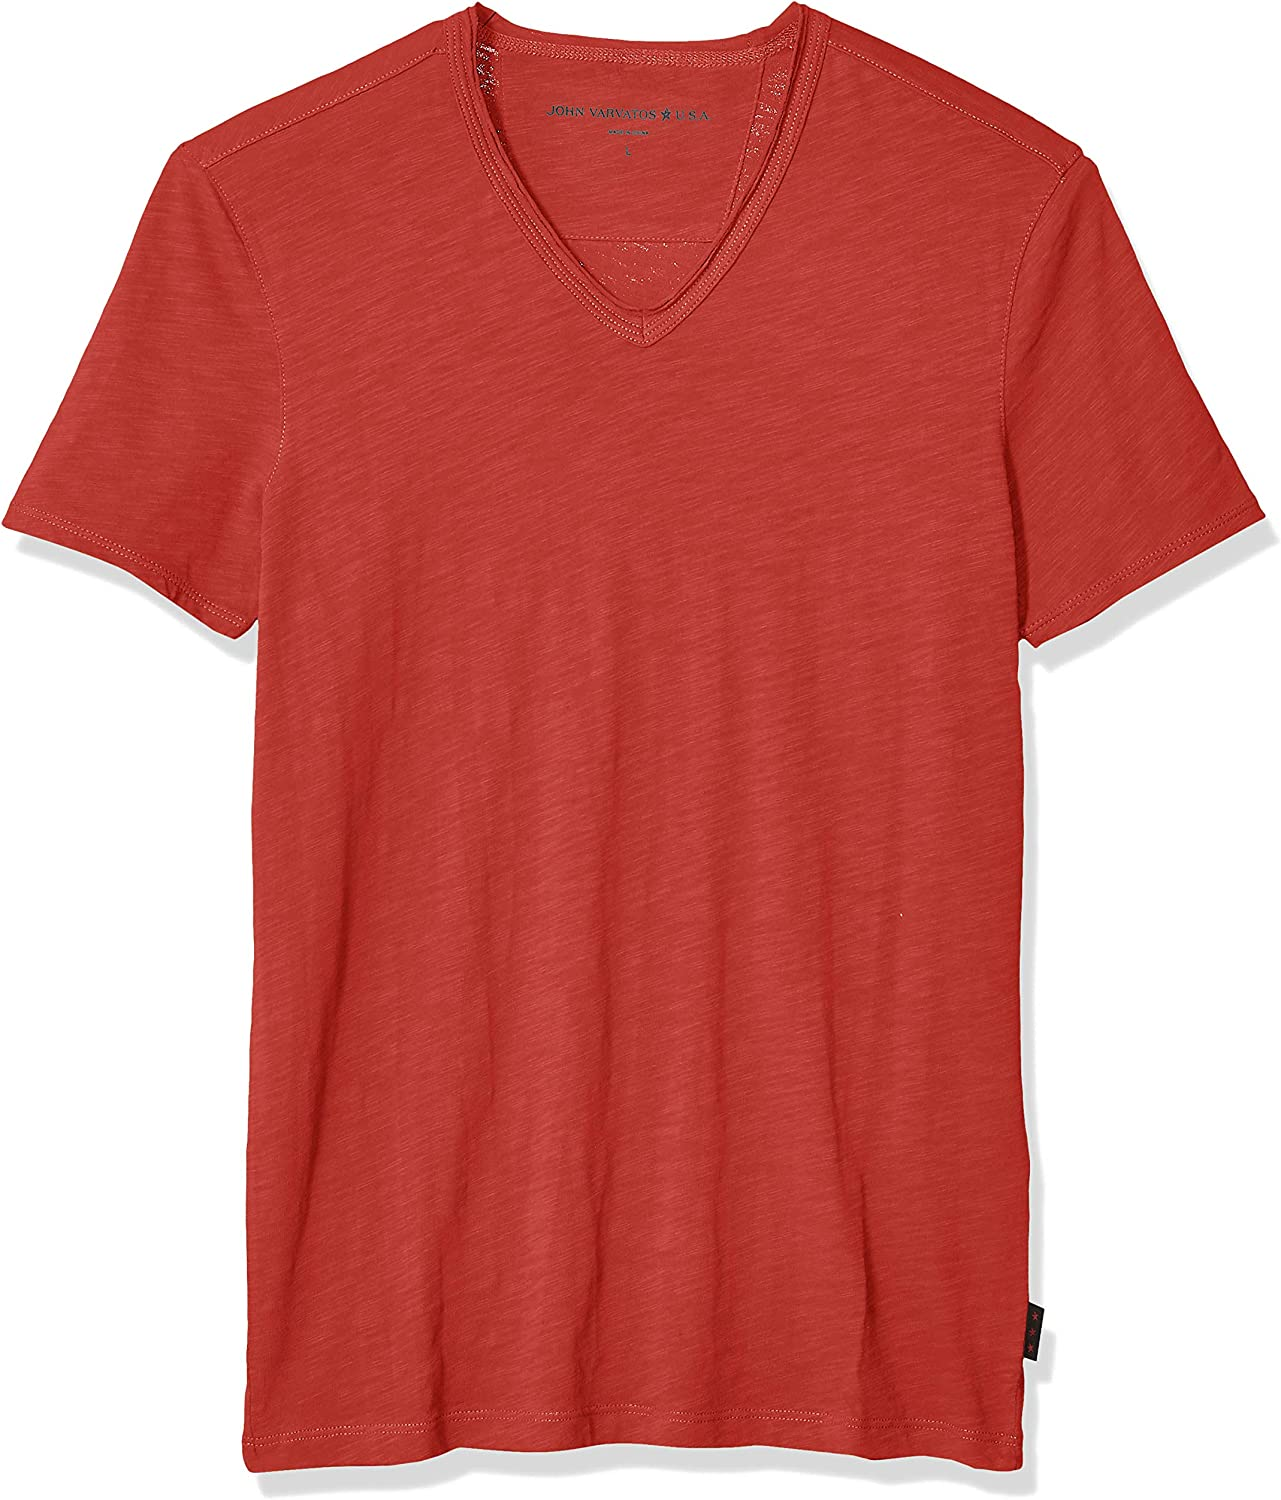 John Varvatos Star USA Men's Miles Short Sleeve Slub V-Neck with Cut Raw Edge